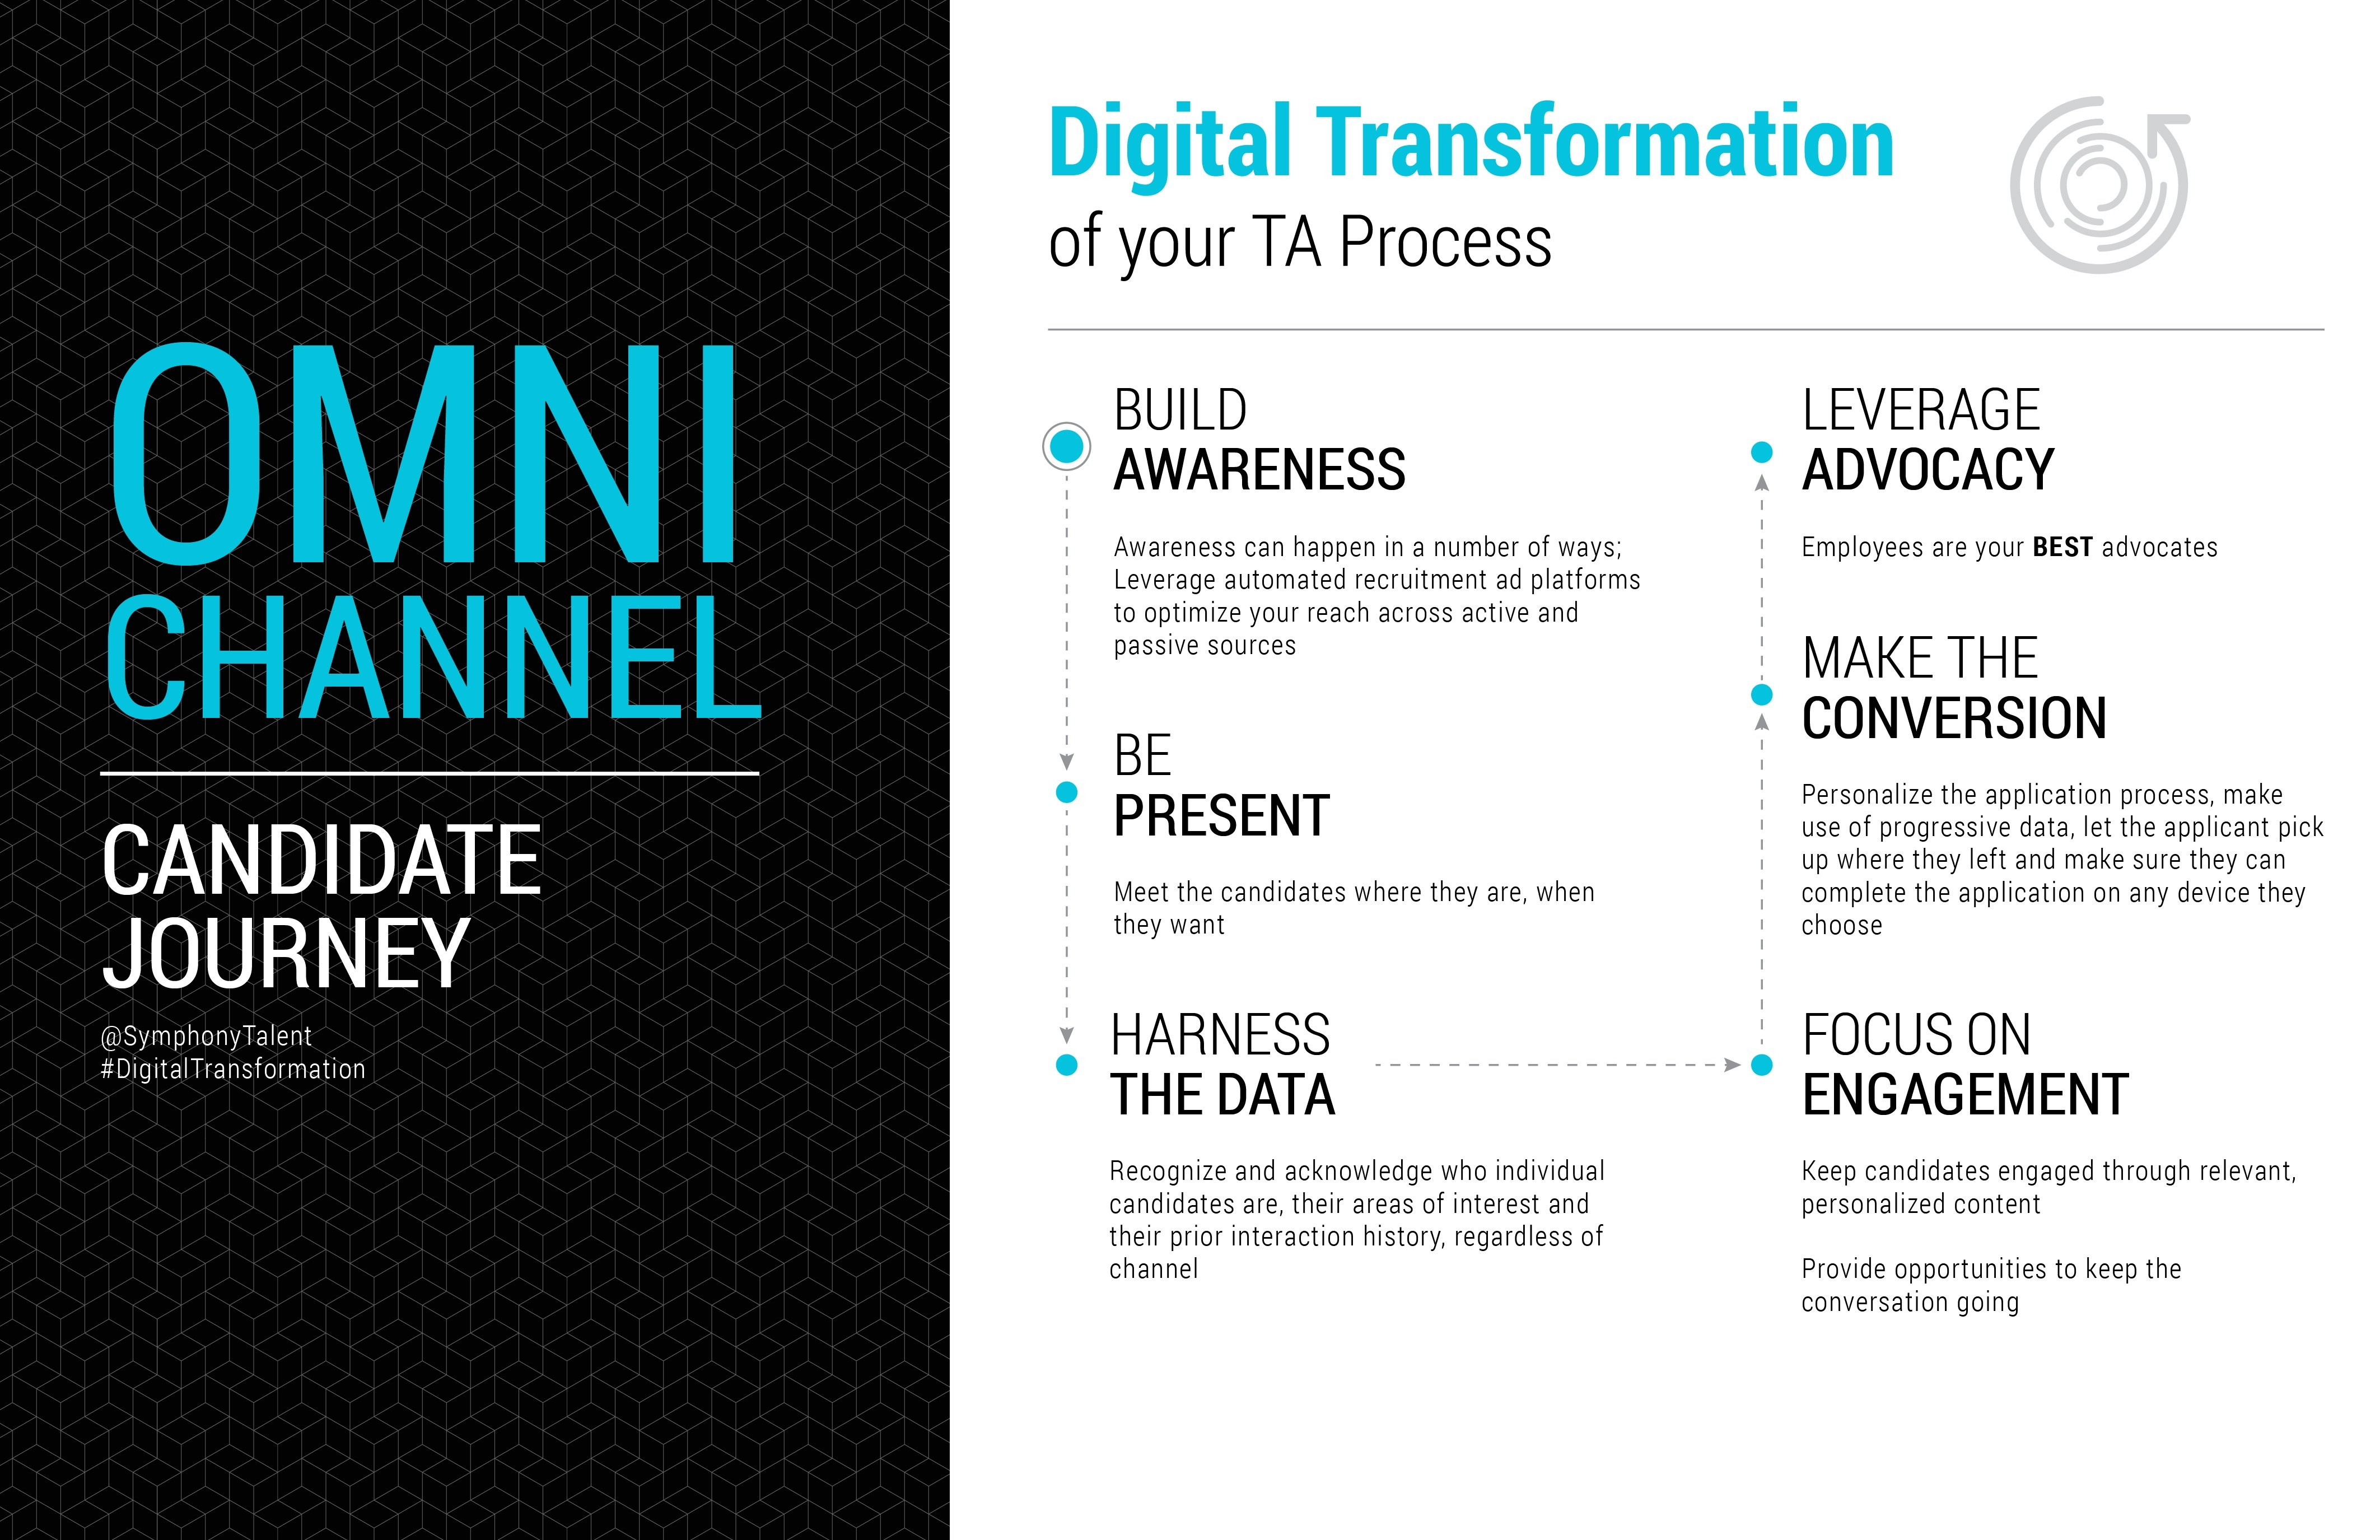 Digital Transformation of your TA process